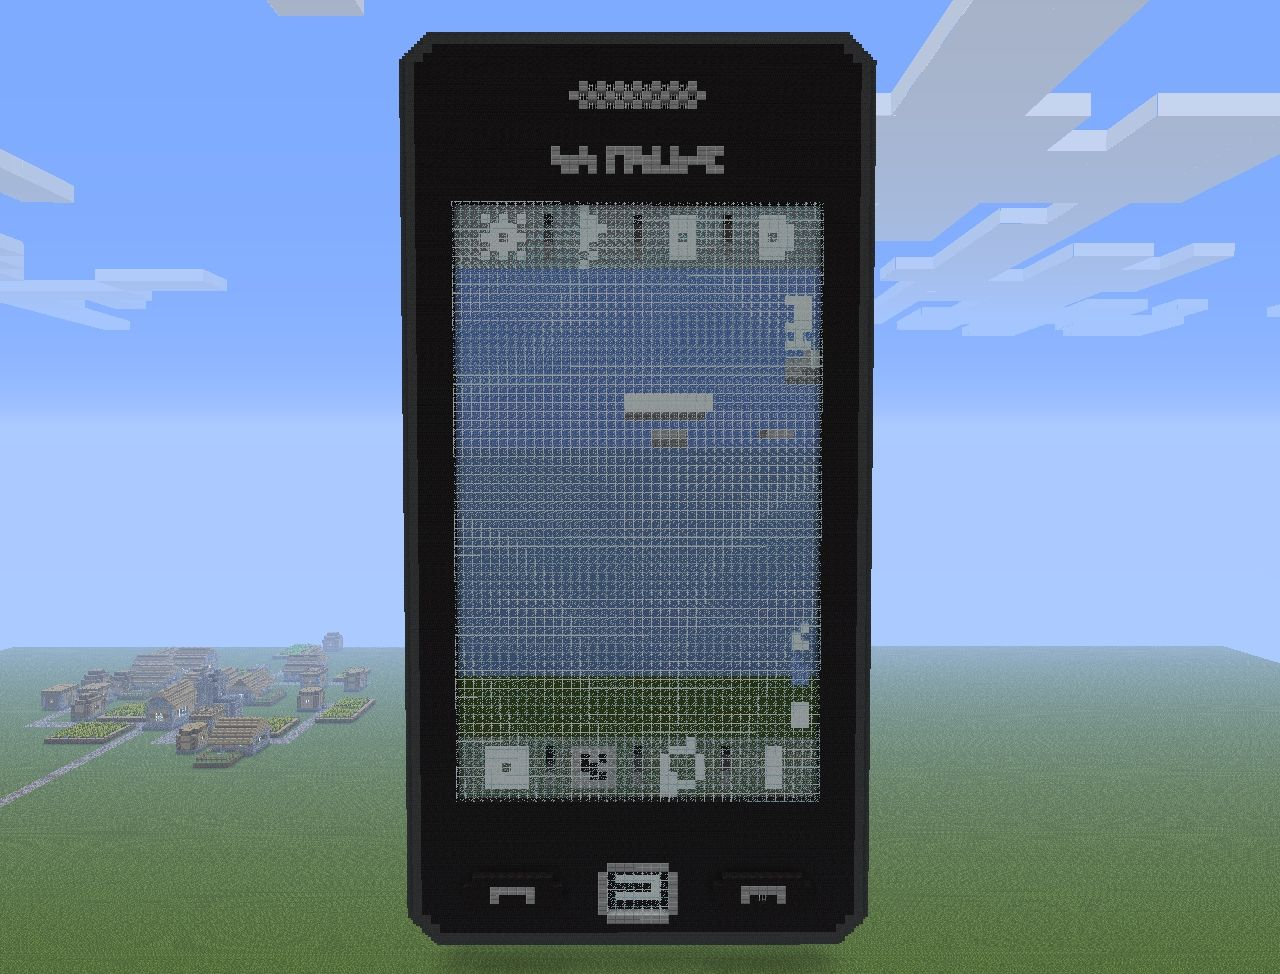 samsung s5230 star minecraft project